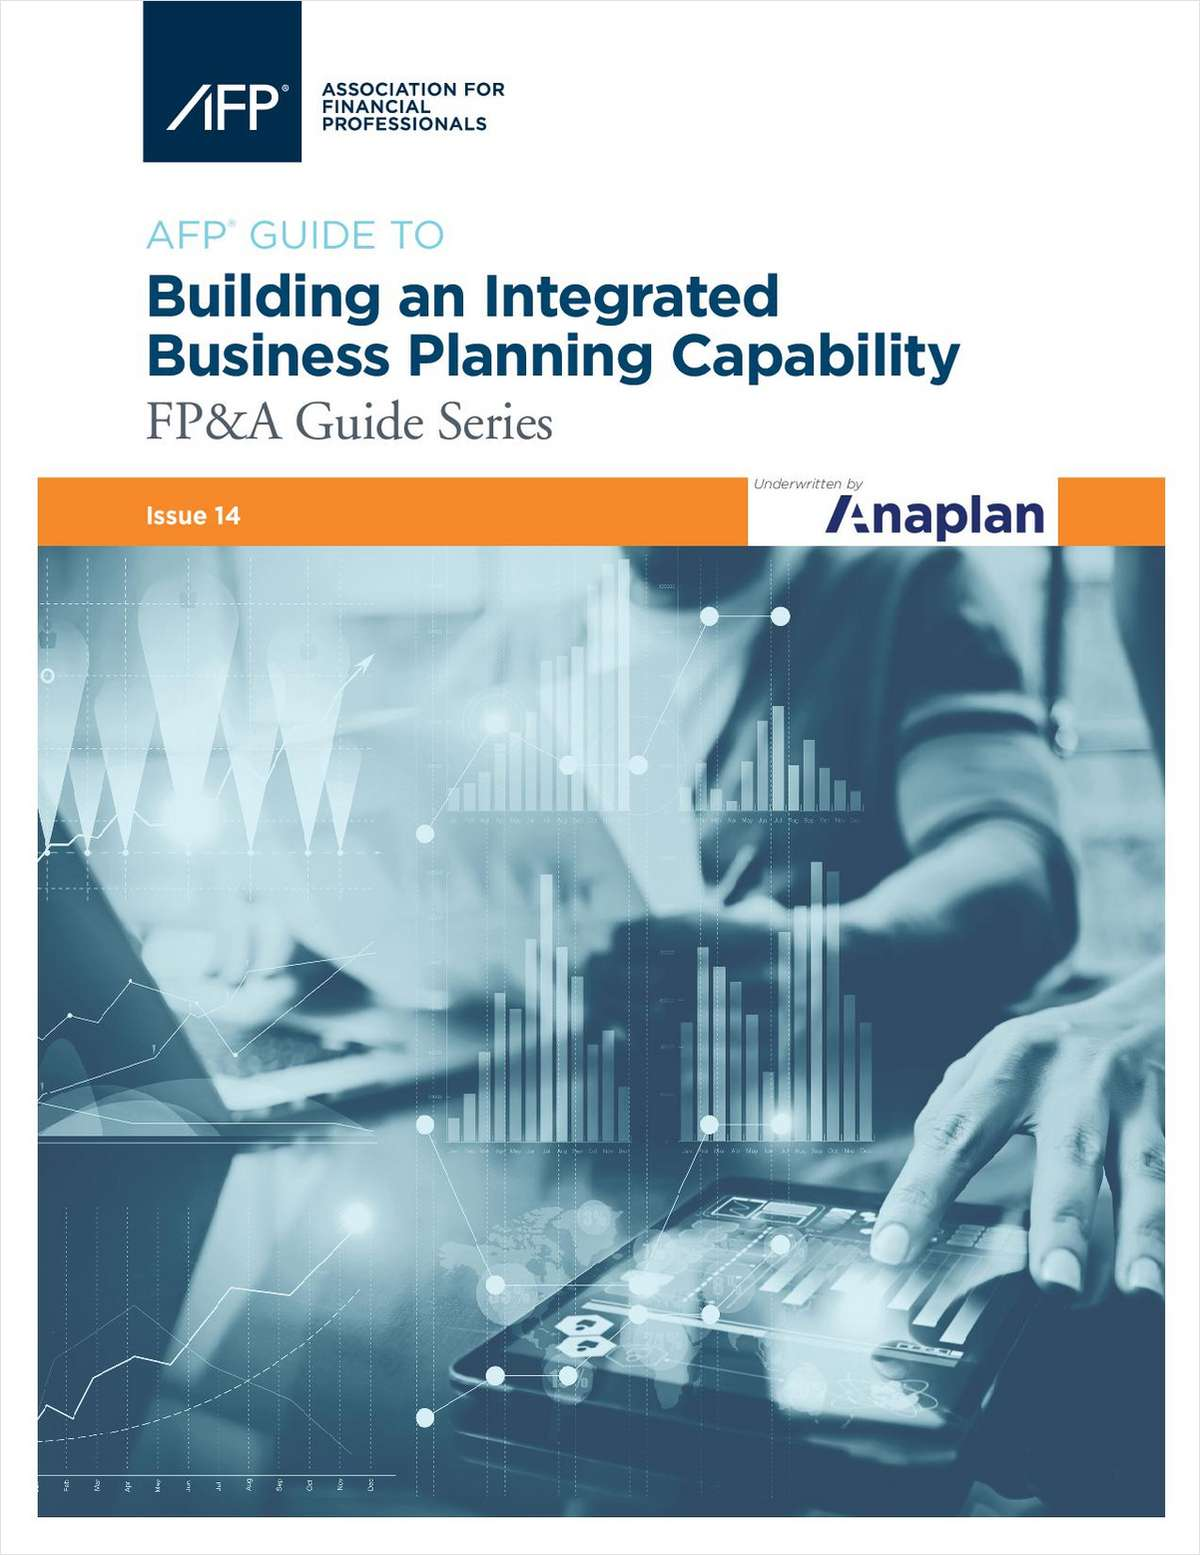 Building an Integrated Business Planning Capability